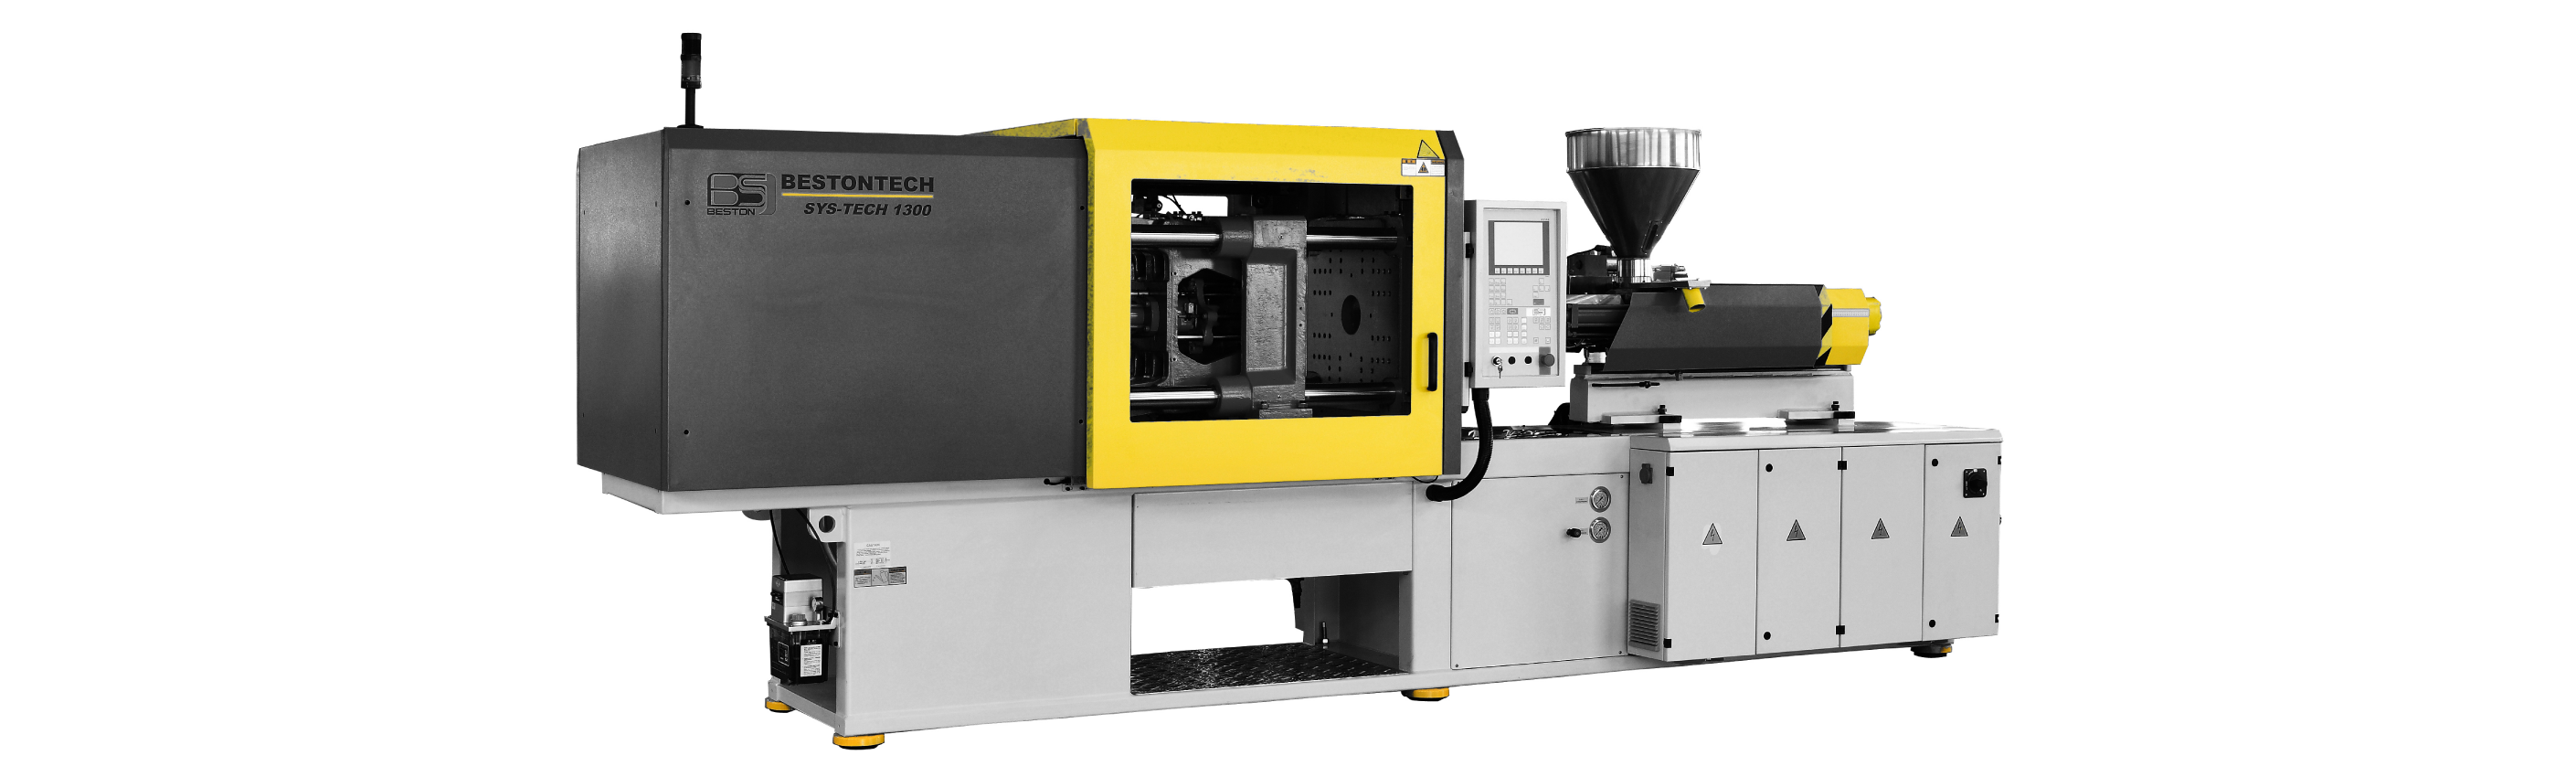 An injection moulding machine manufactured from components from Asia, the Beston BTW-V Series is priced competatively and saves energy for plastics businesses.